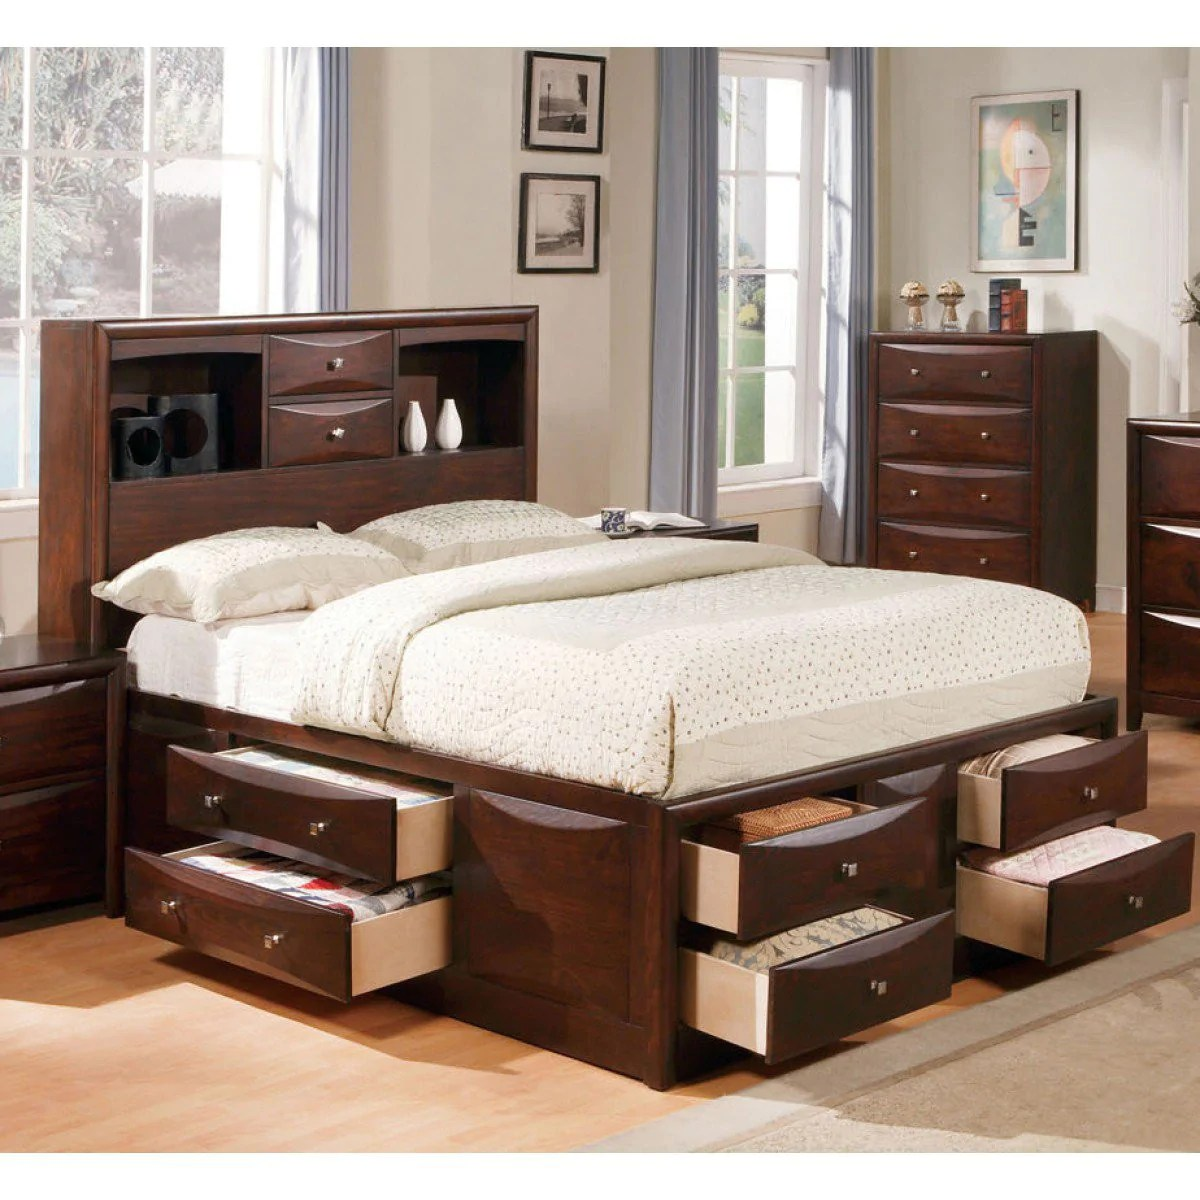 Acme Manhattan California King Bed W Storage Espresso 04064ck Hipbeds Com